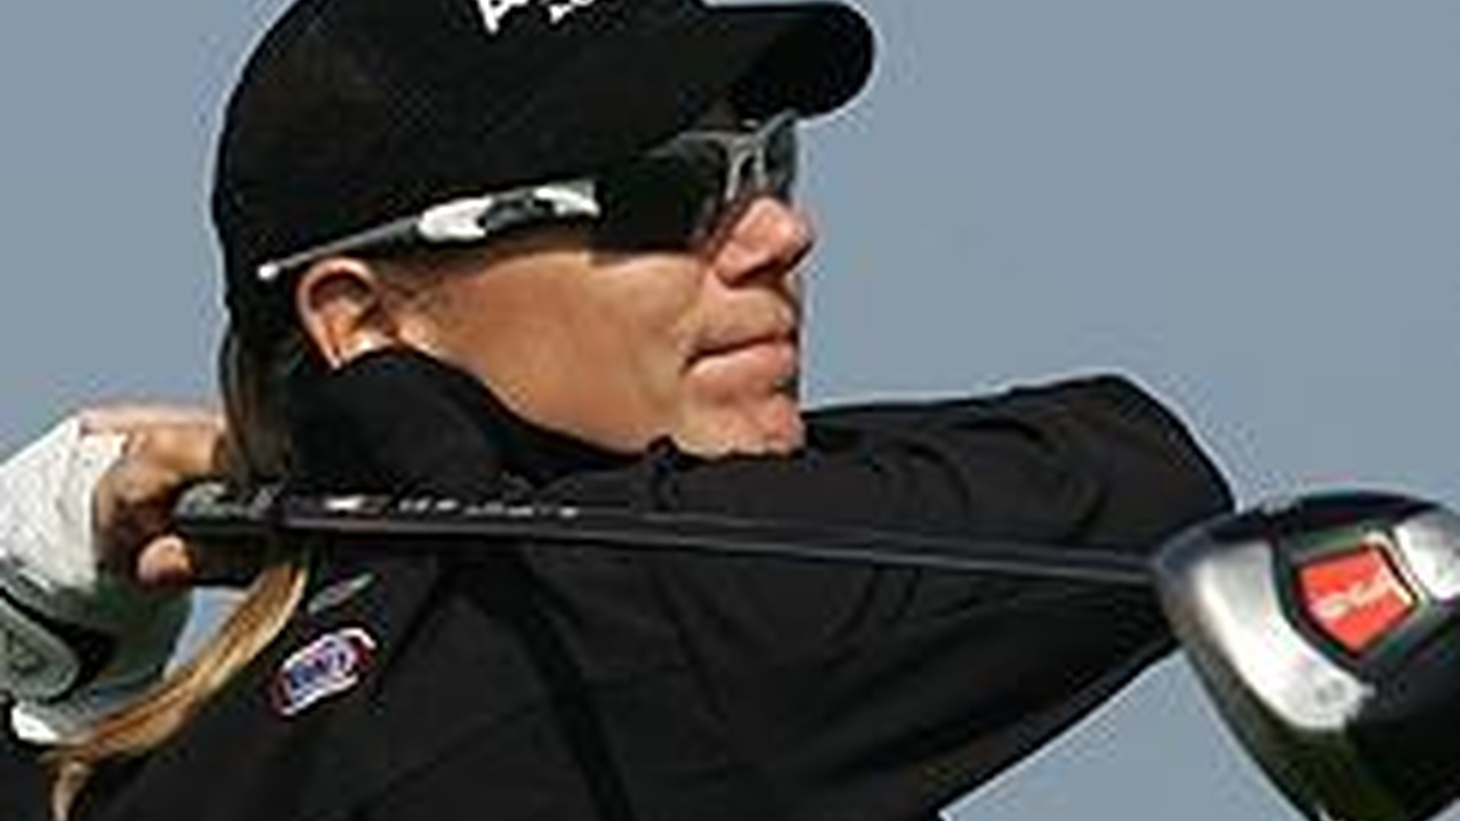 One of the great athletes of our time announced her retirement this week. Swedish born, now Florida resident Annika Sorenstam, will play out the rest of this season and then step away from the game she has dominated for more than a decade. Well, she'll actually still be in the thick of the game with her businesses of designing courses, branding clothing, and running academies, but she's hanging up her competitive cleats...